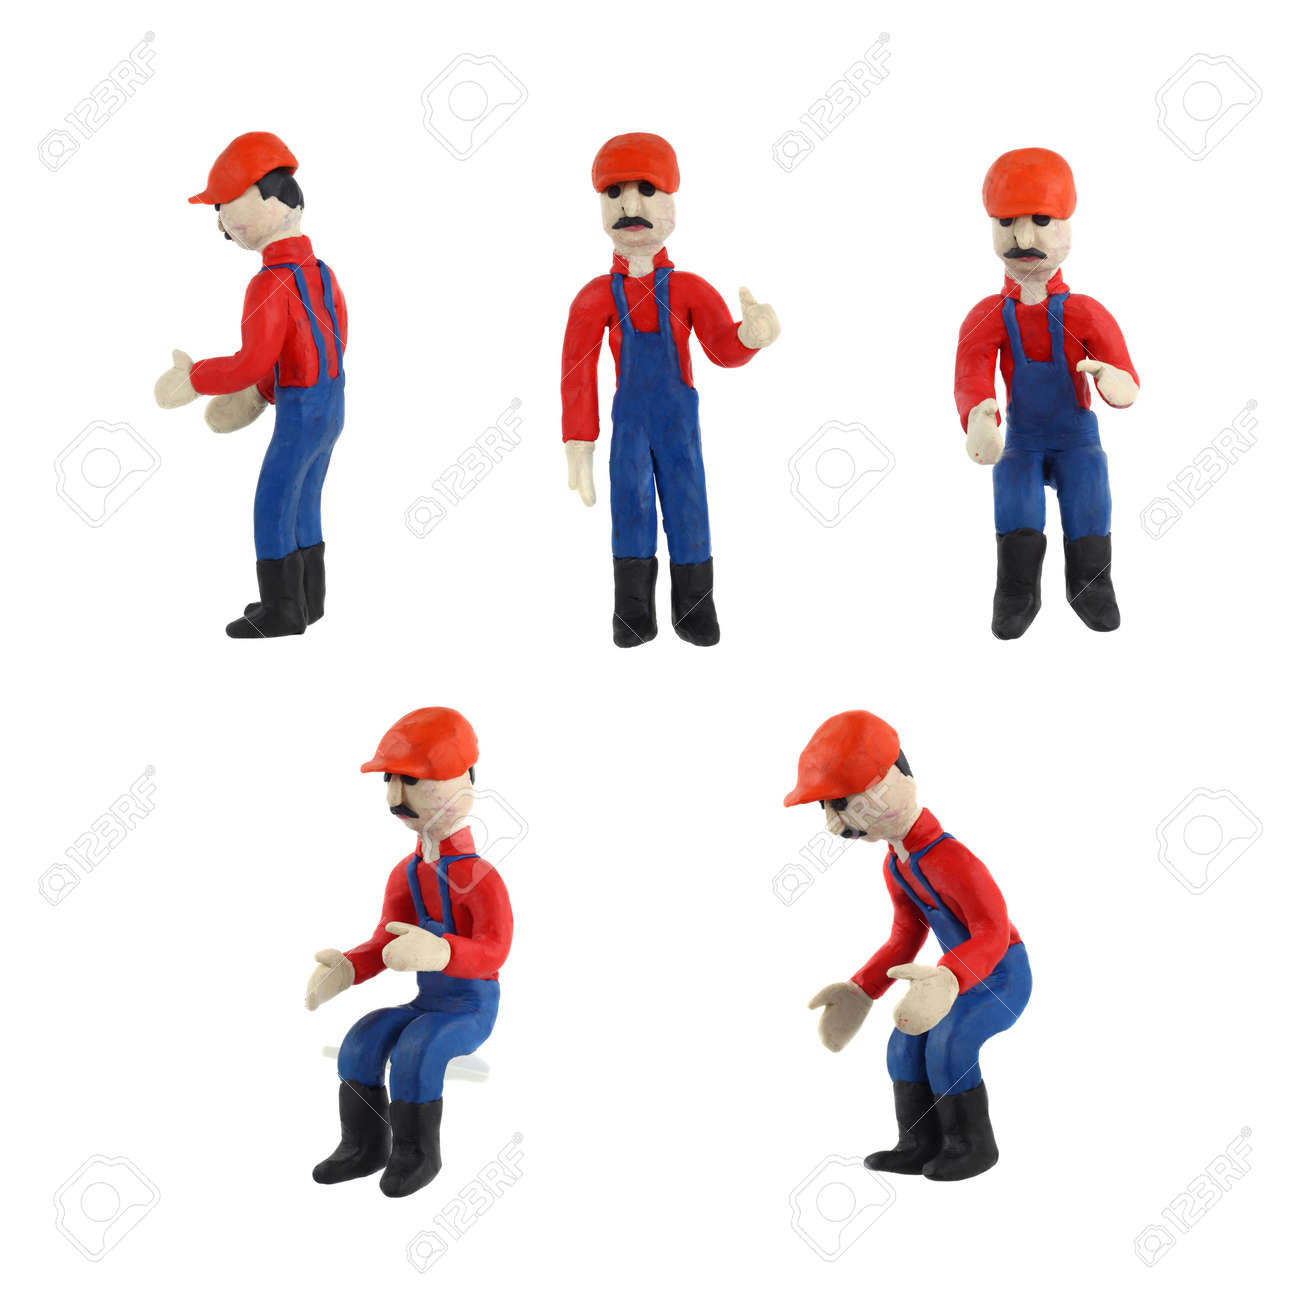 Plasticine figurine of a man in working clothes set in different poses Stock Photo - 16304650